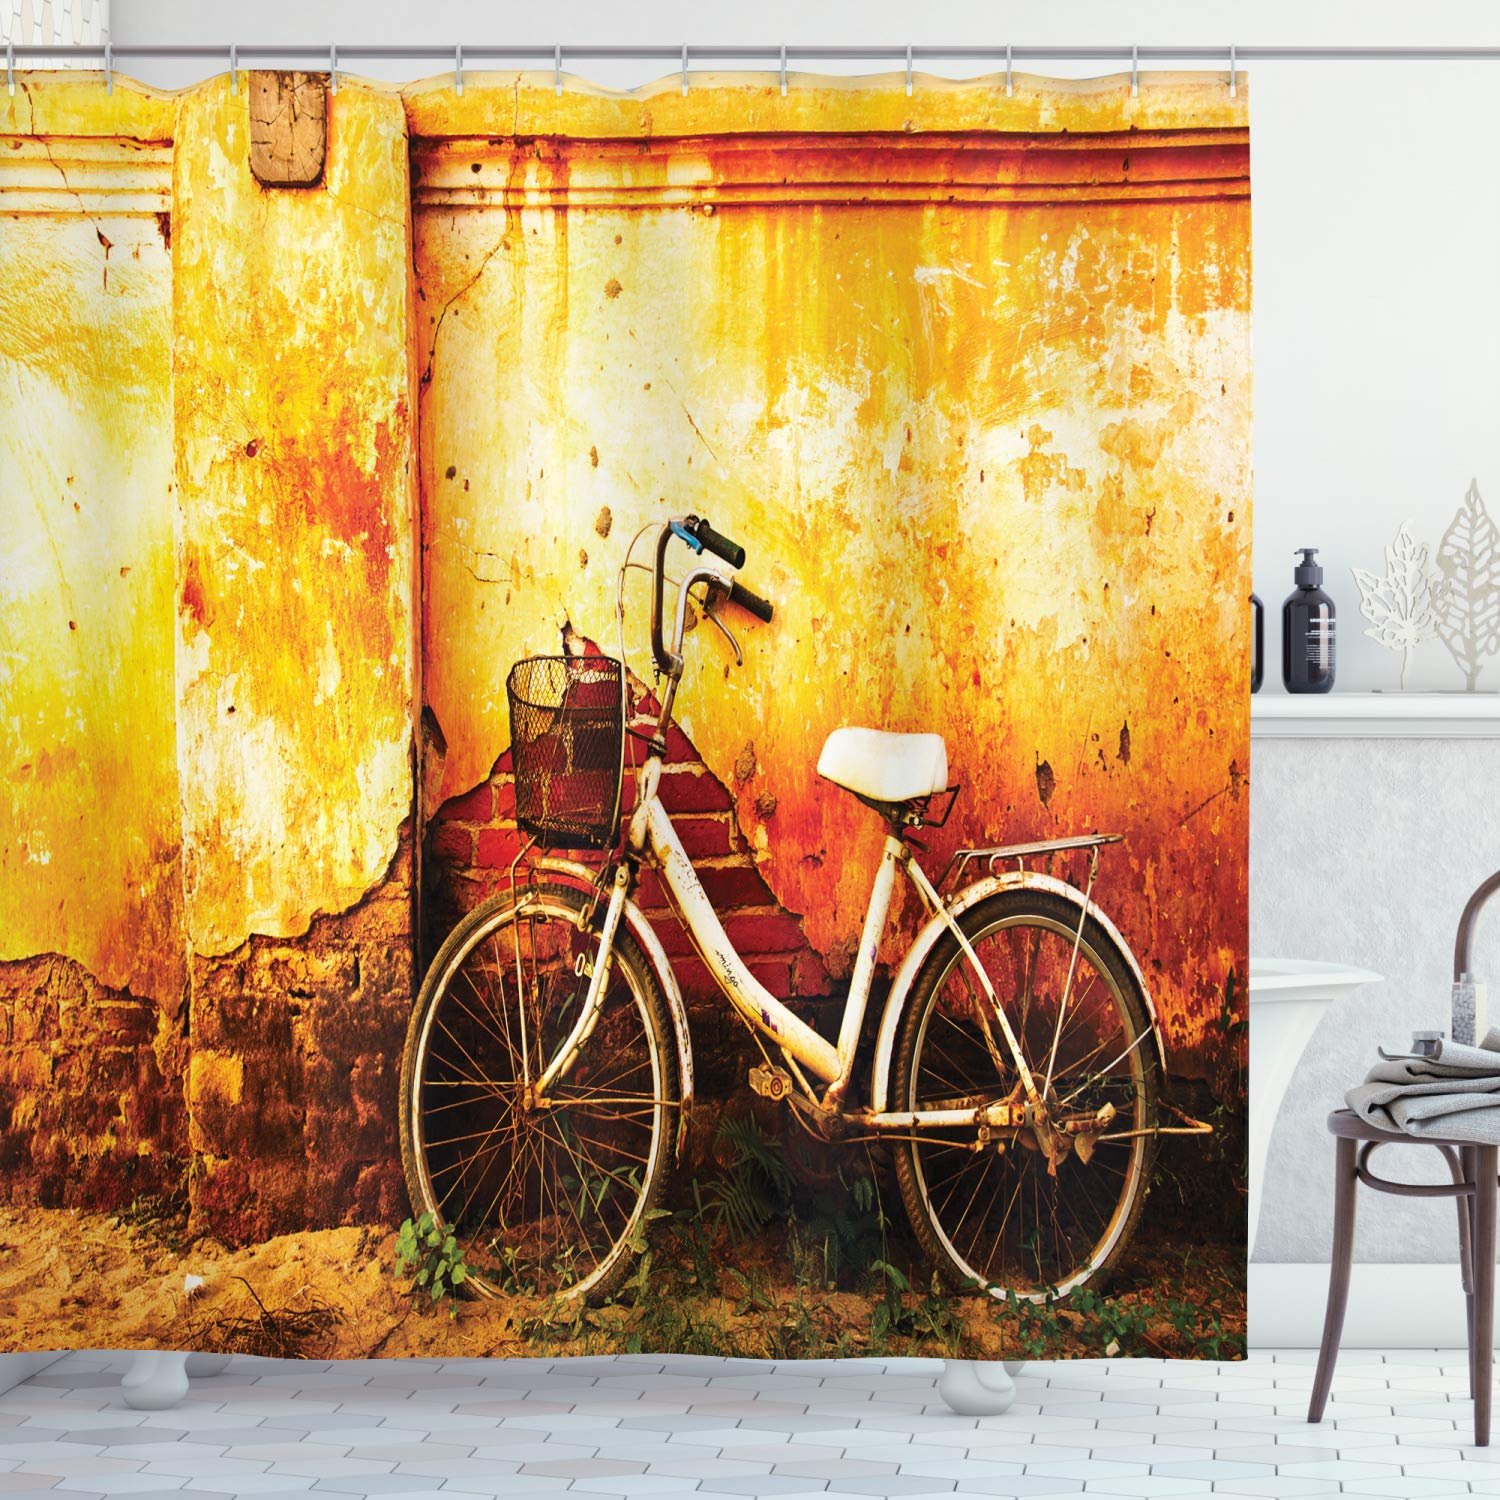 """Ambesonne Bicycle Shower Curtain, Vintage Bike in Front of a Rusty Dirty Cracked Broken Brick Wall Lifestyle Photo, Cloth Fabric Bathroom Decor Set with Hooks, 75"""" Long, Sepia"""